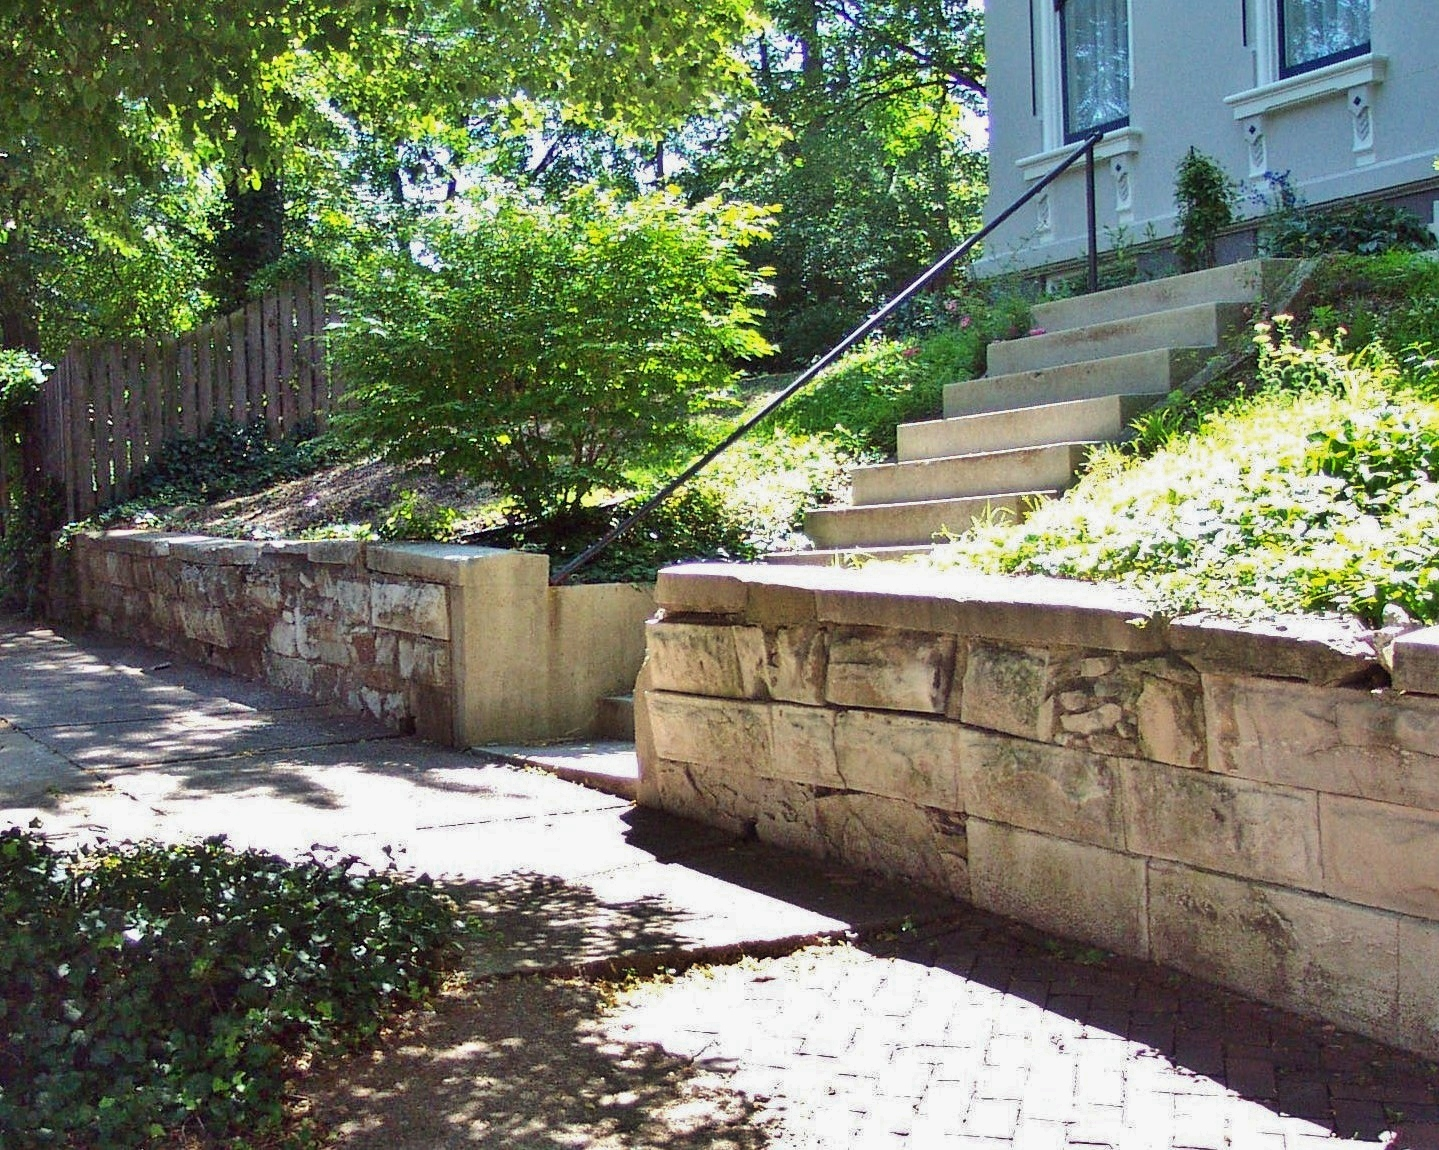 Early 1800's Limestone Retaining Wall - Soulard Neighborhood - Saint Louis, MO - Stone Works - Lee Lindsey